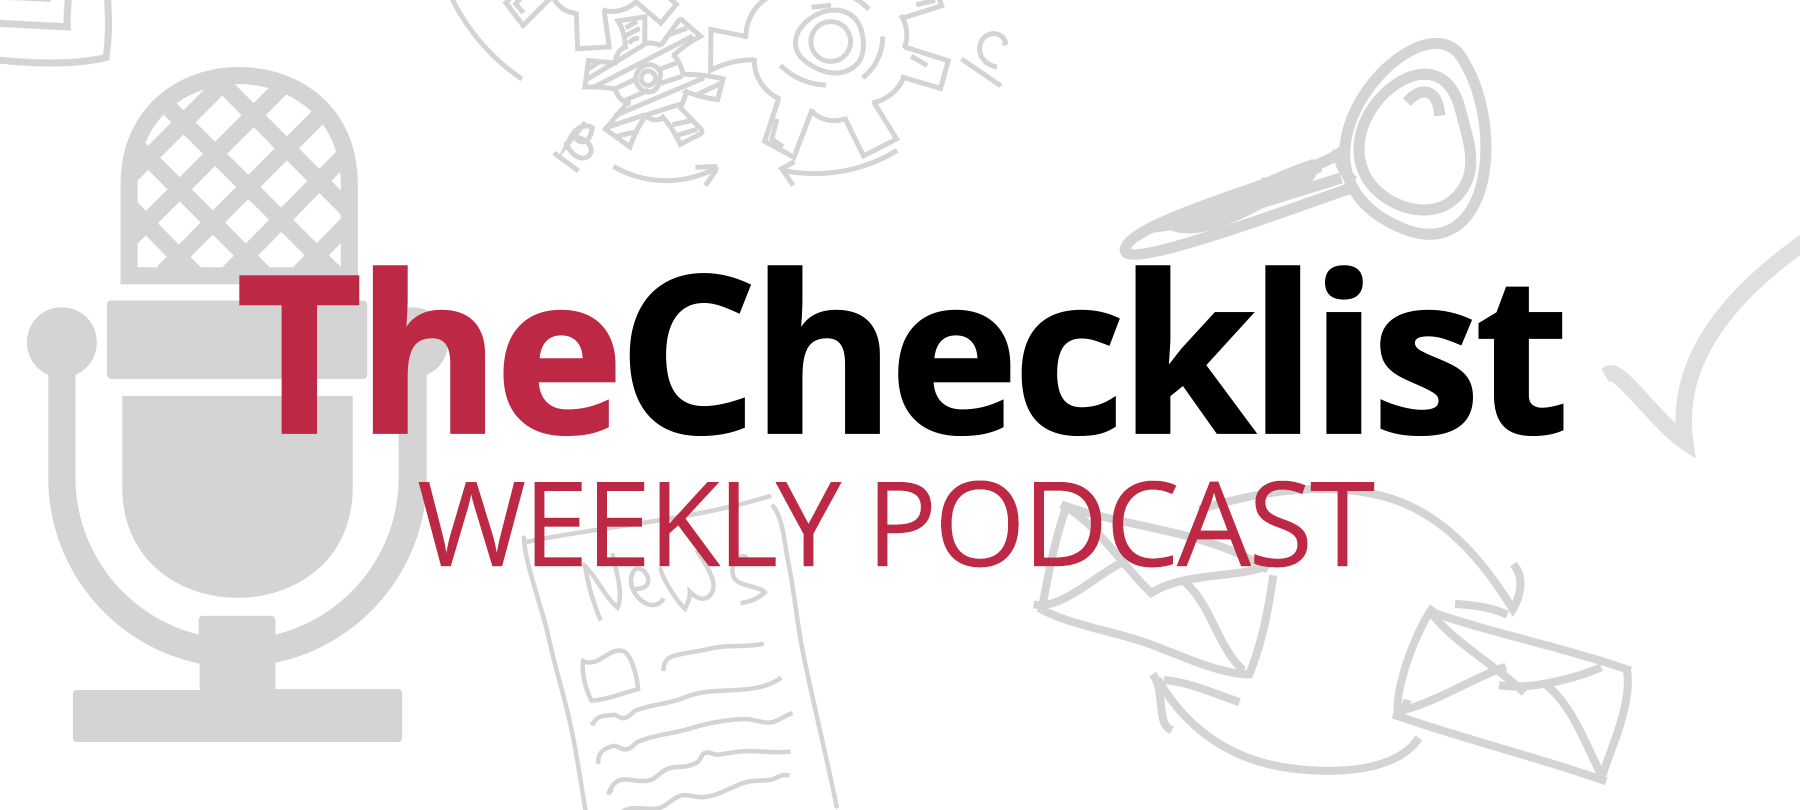 Episode: Checklist 12:Five Tips for Secure Holiday Shopping